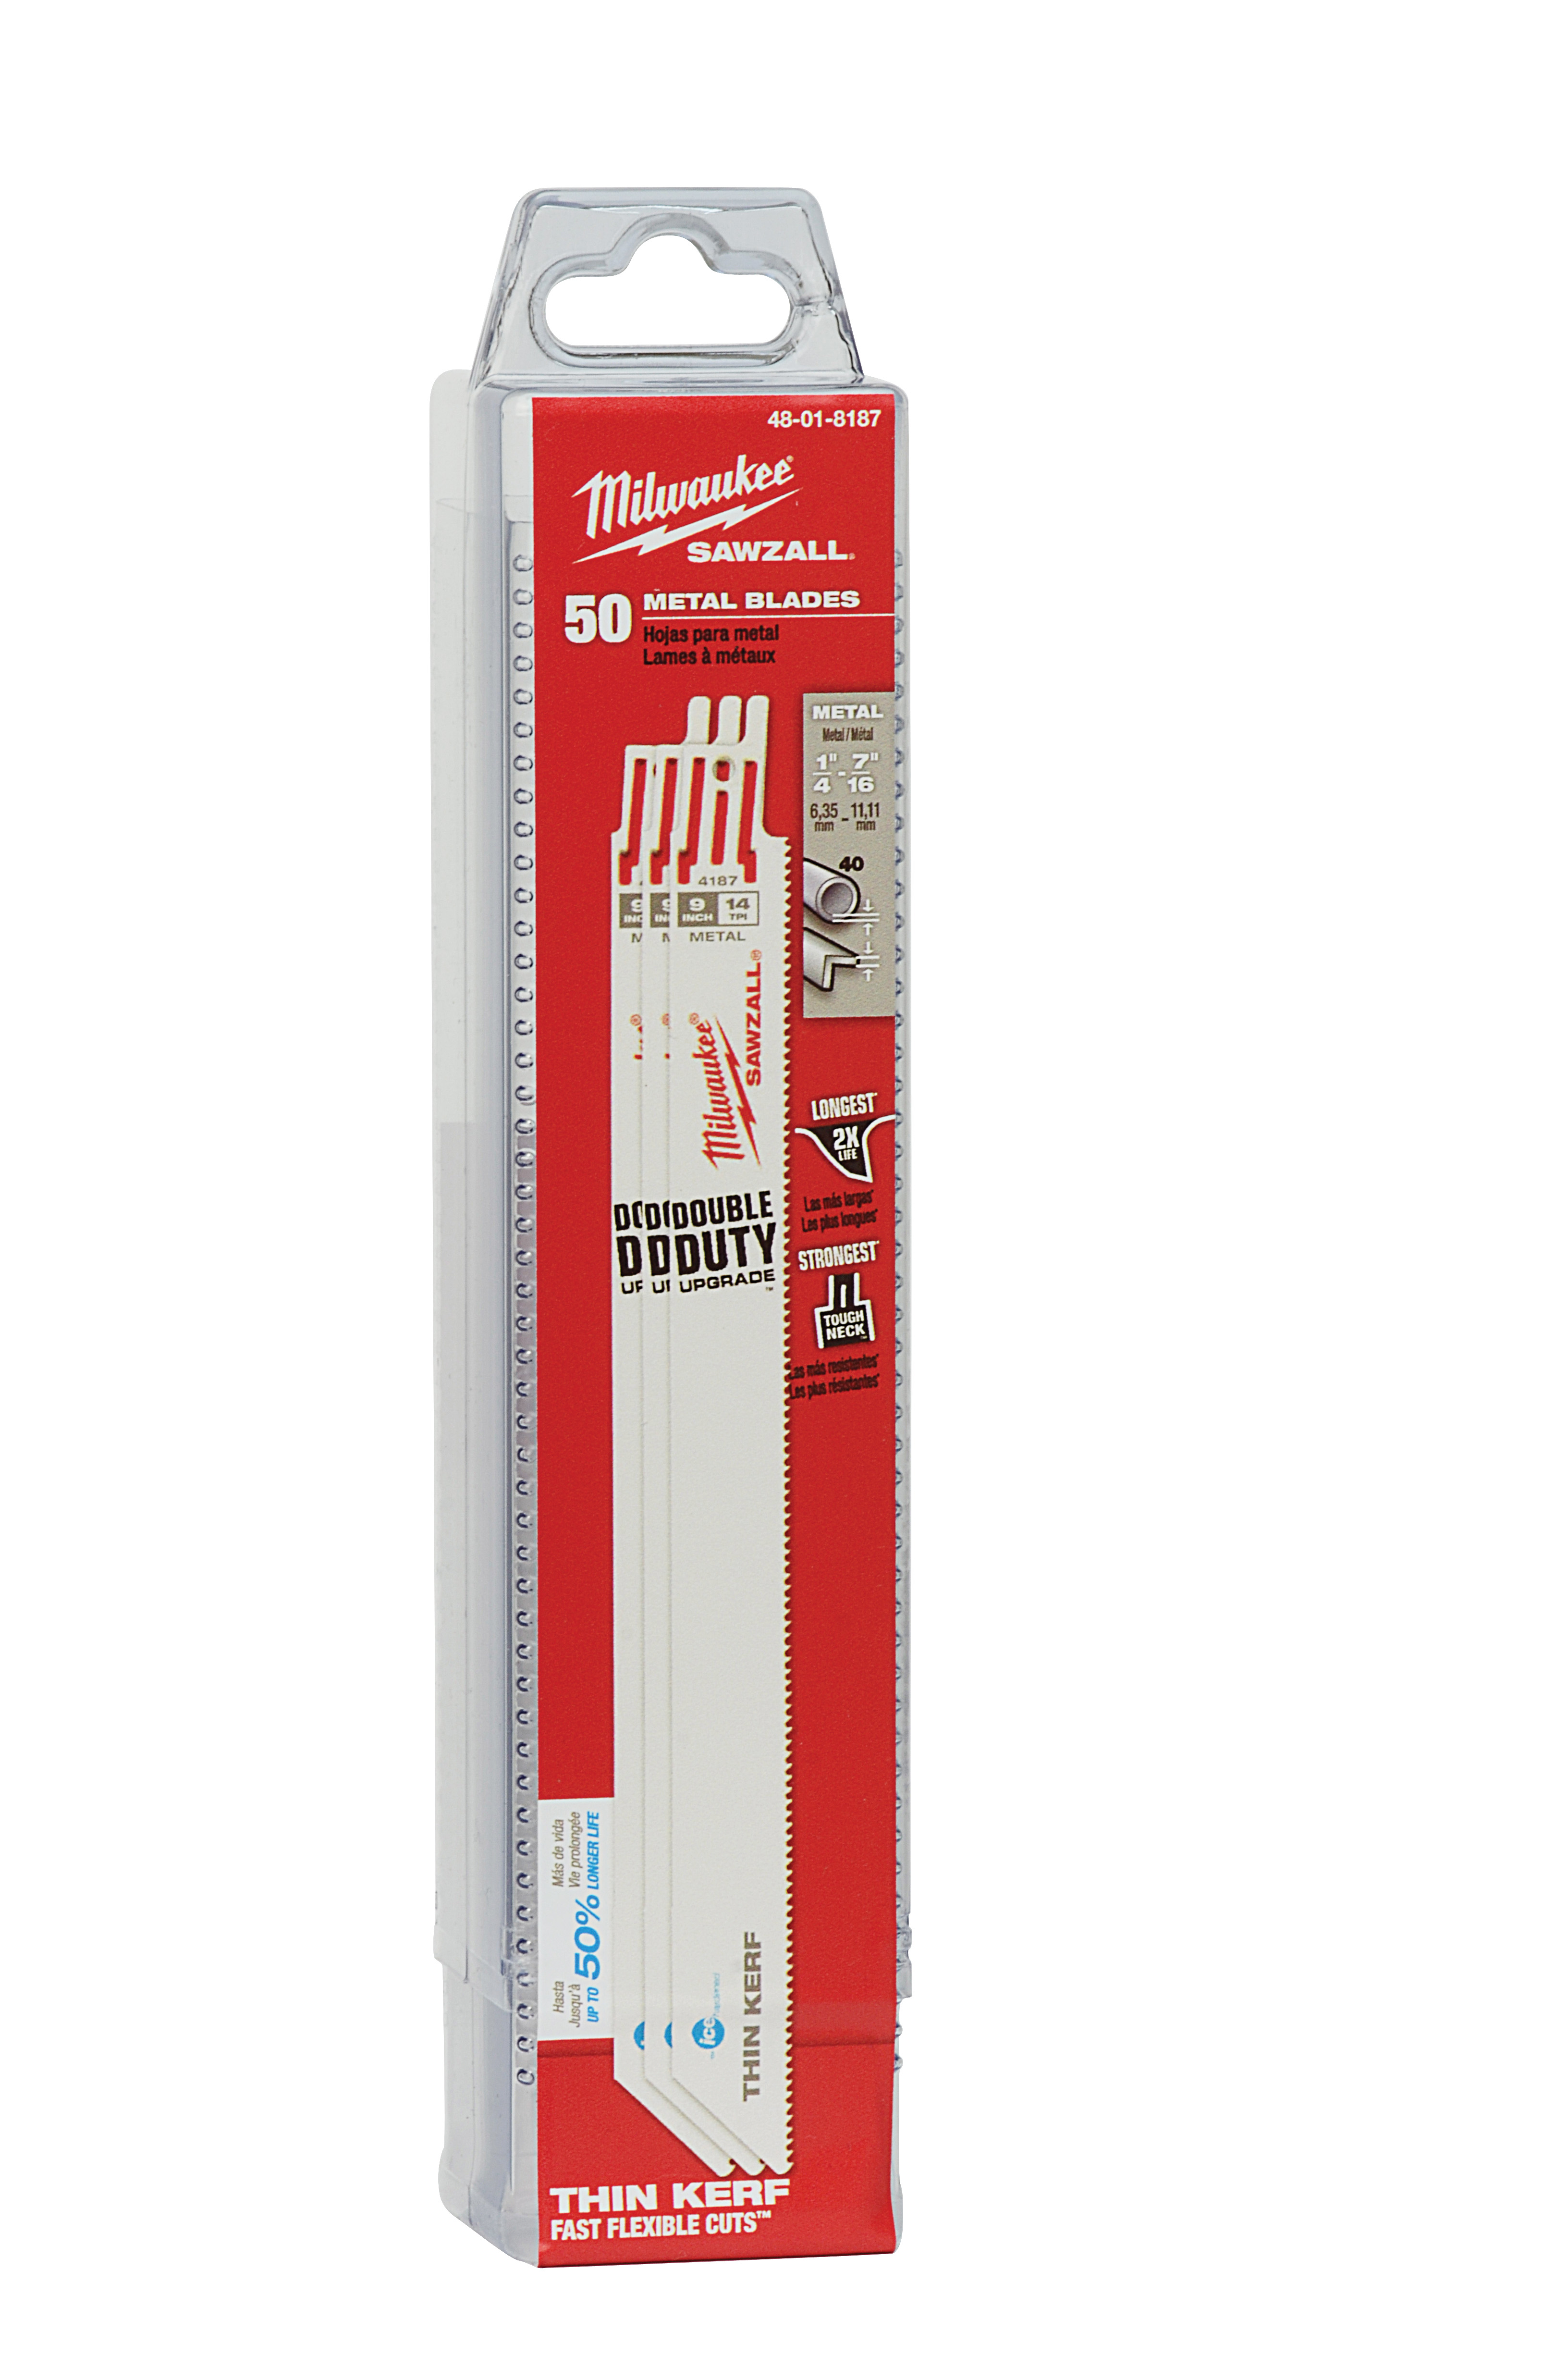 Milwaukee® SAWZALL® Ice Hardened™ 48-01-8187 Double Duty Straight Back Thin Kerf Reciprocating Saw Blade, 9 in L x 3/4 in W, 14 TPI, Bi-Metal Body, Universal/Toothed Edge Tang